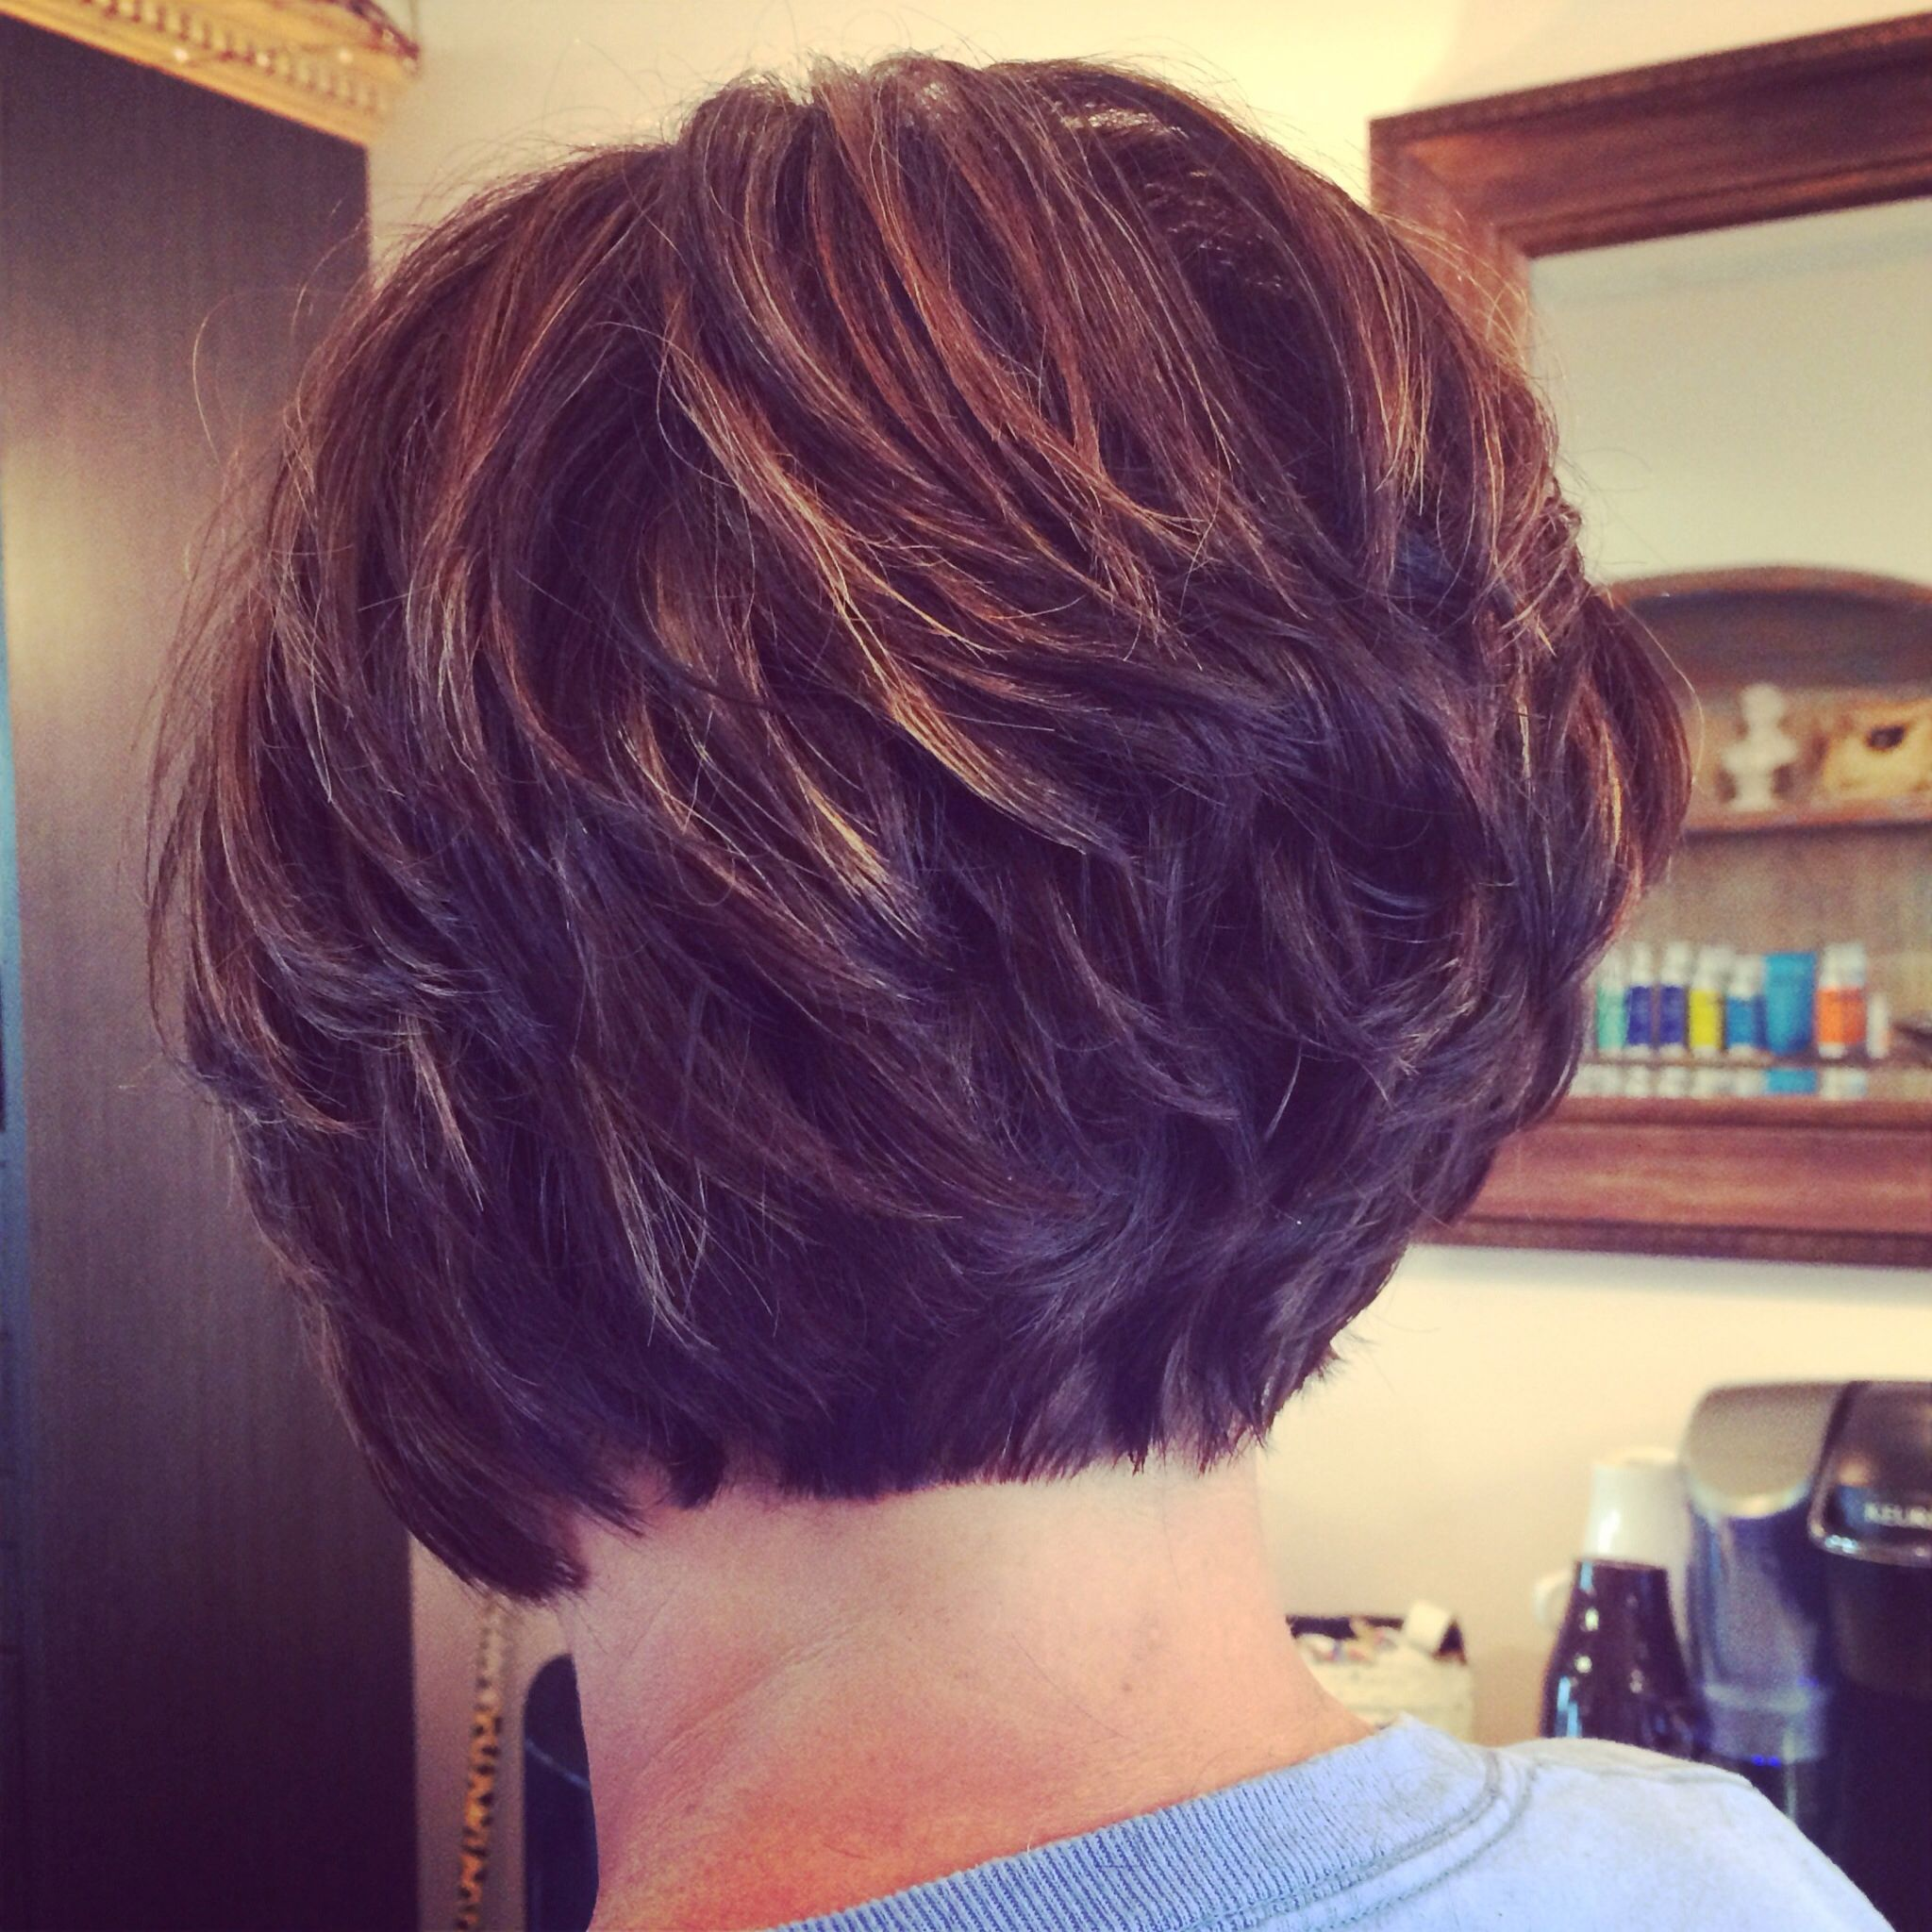 so into short hair right now razored bob with lots of